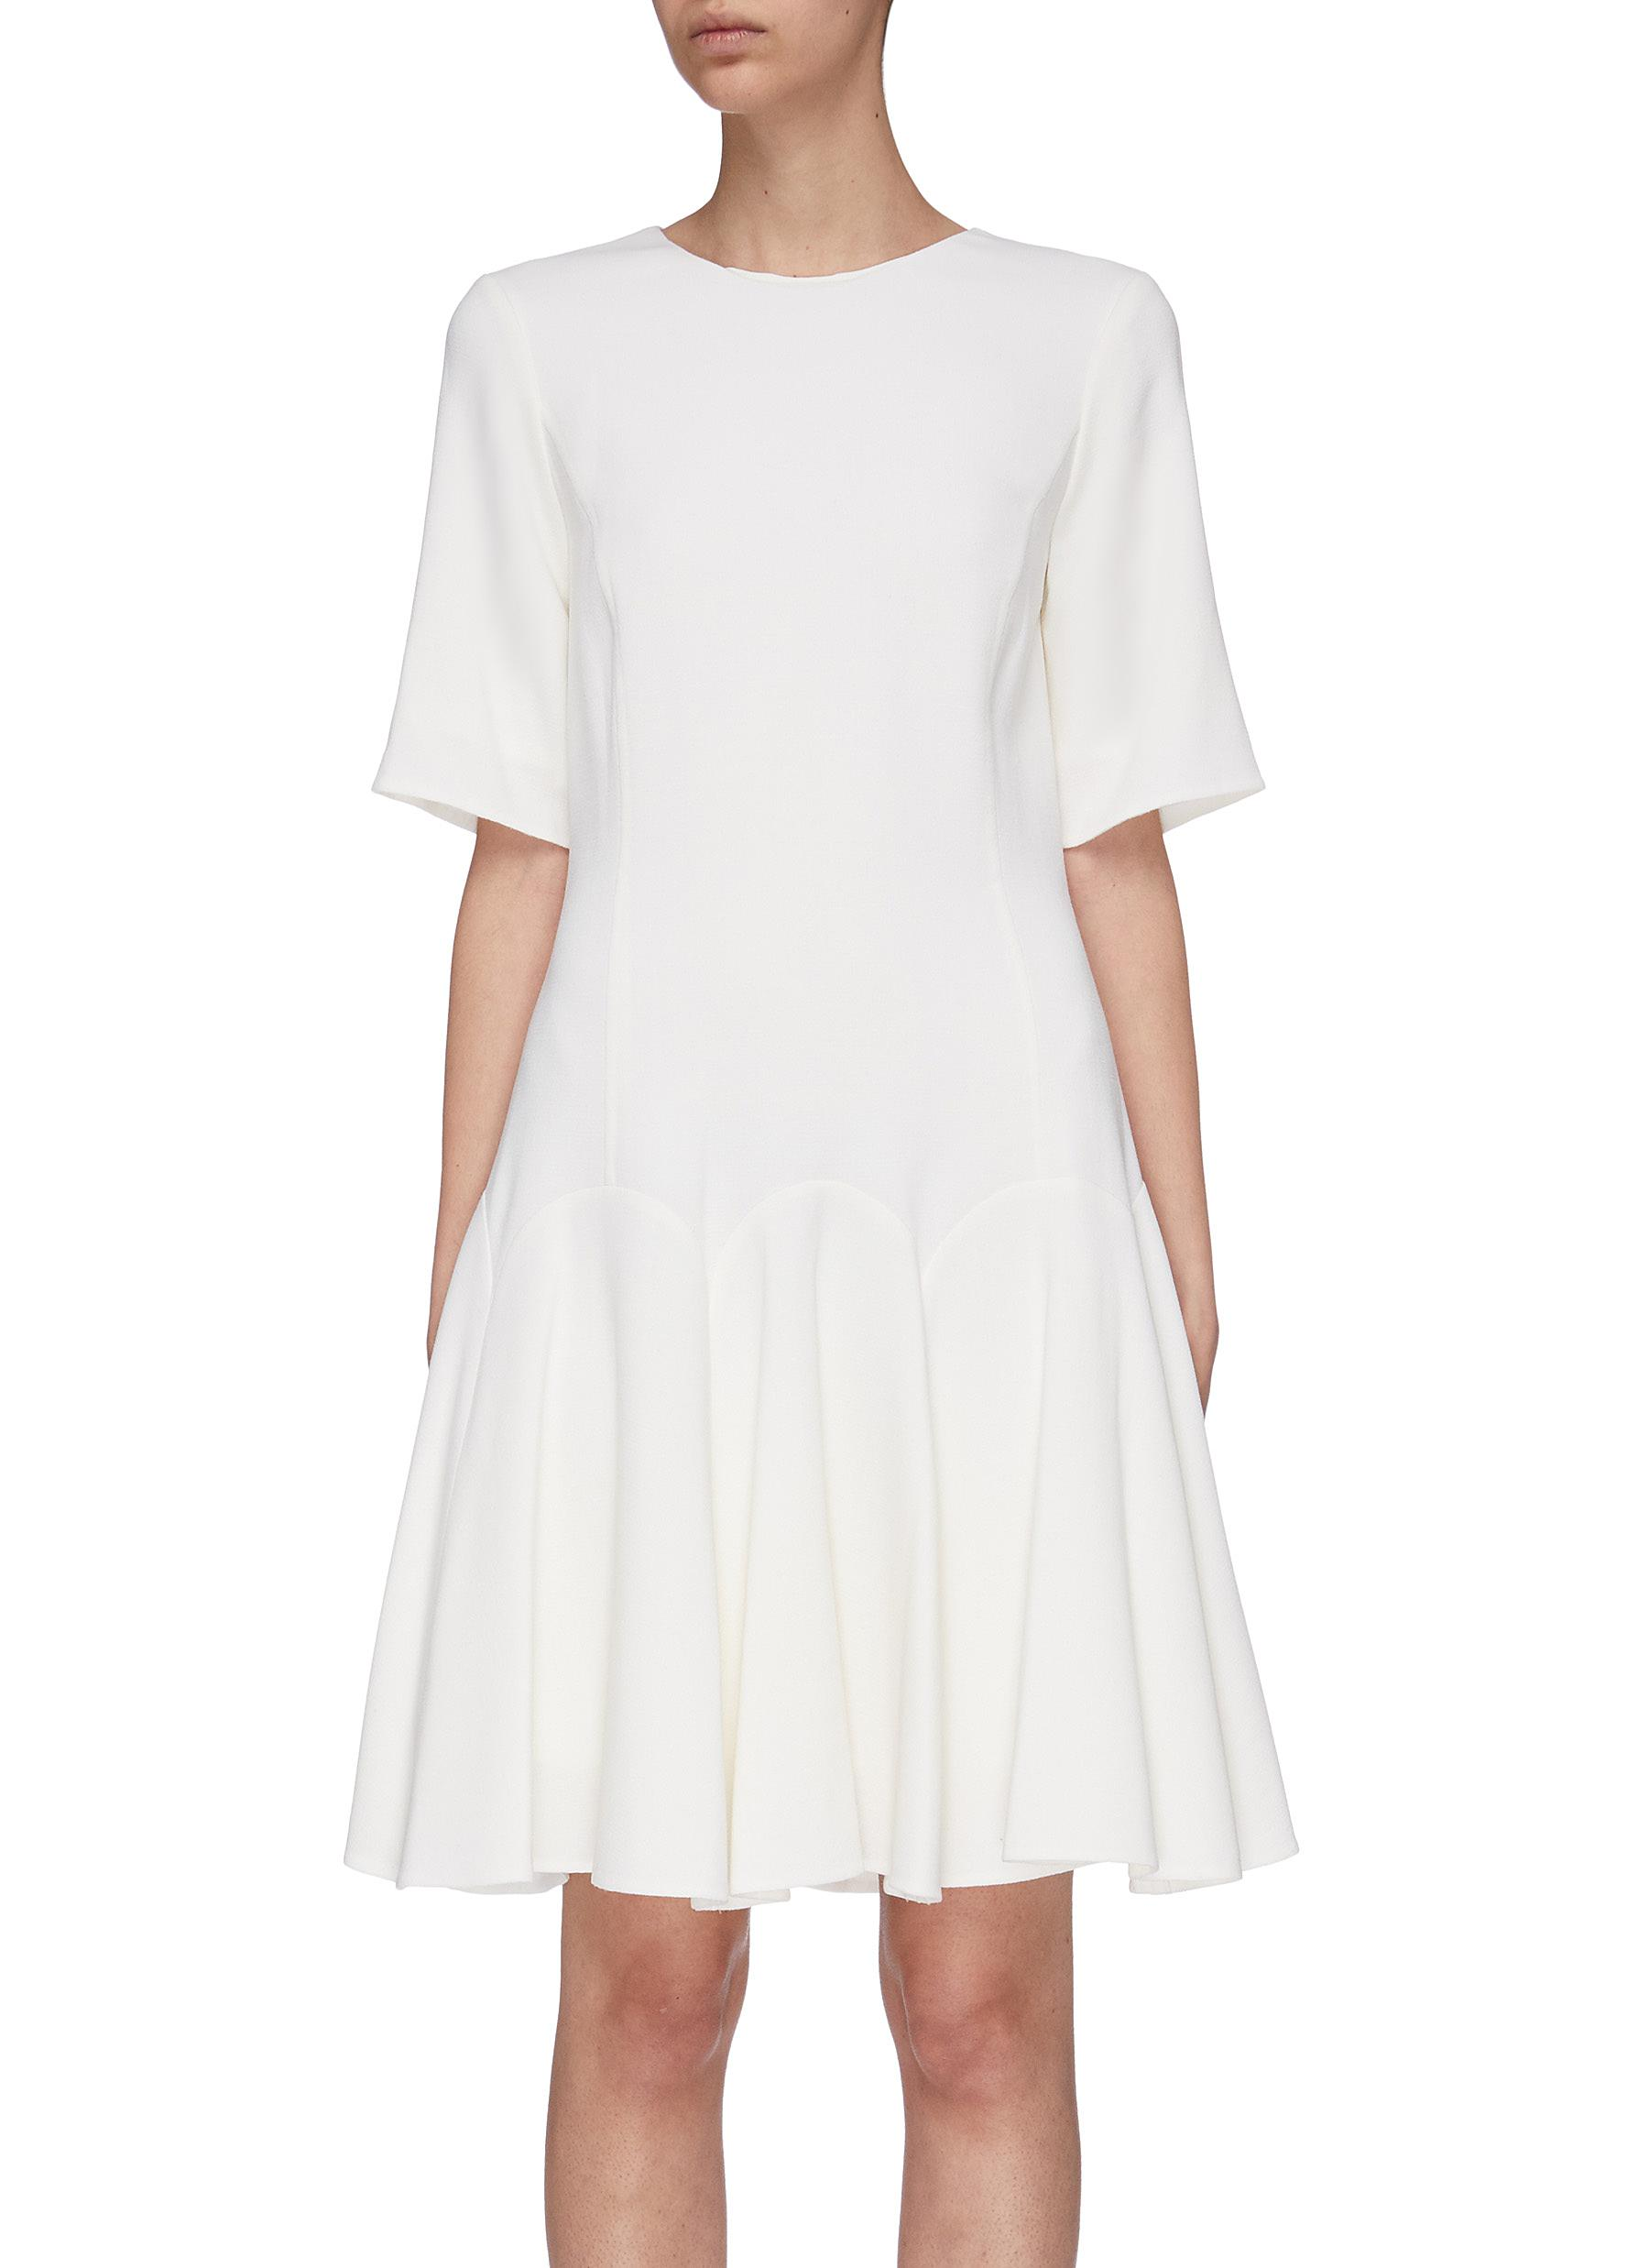 Ruffle hem crepe dress by Oscar De La Renta